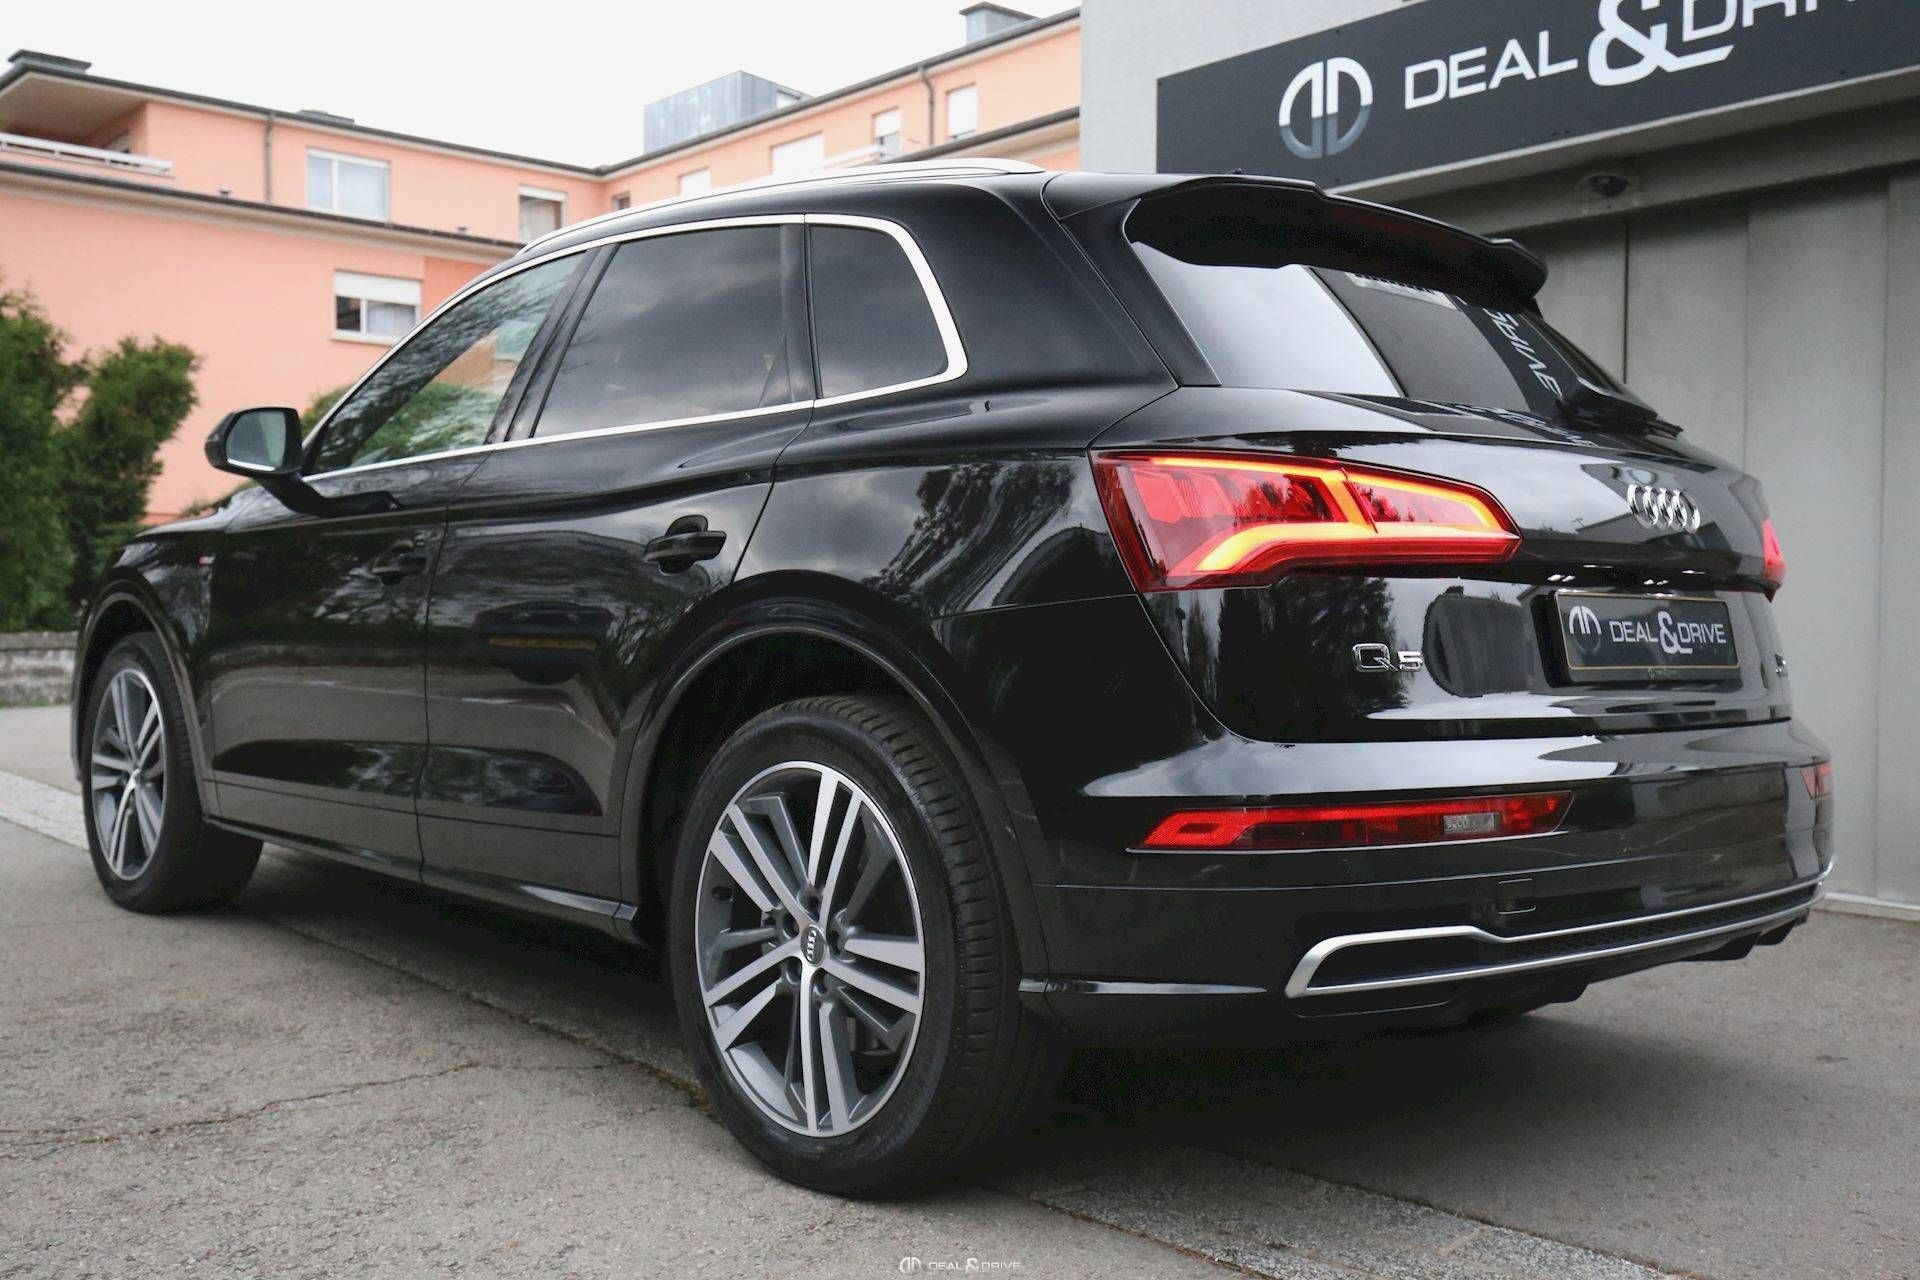 Audi Sq5 Modified Beautiful Audi Q5 2 0 Tdi 190 Quattro S Line S Tronic Deal Drive Best Cars-1671 Of Luxury Audi Sq5 Modified